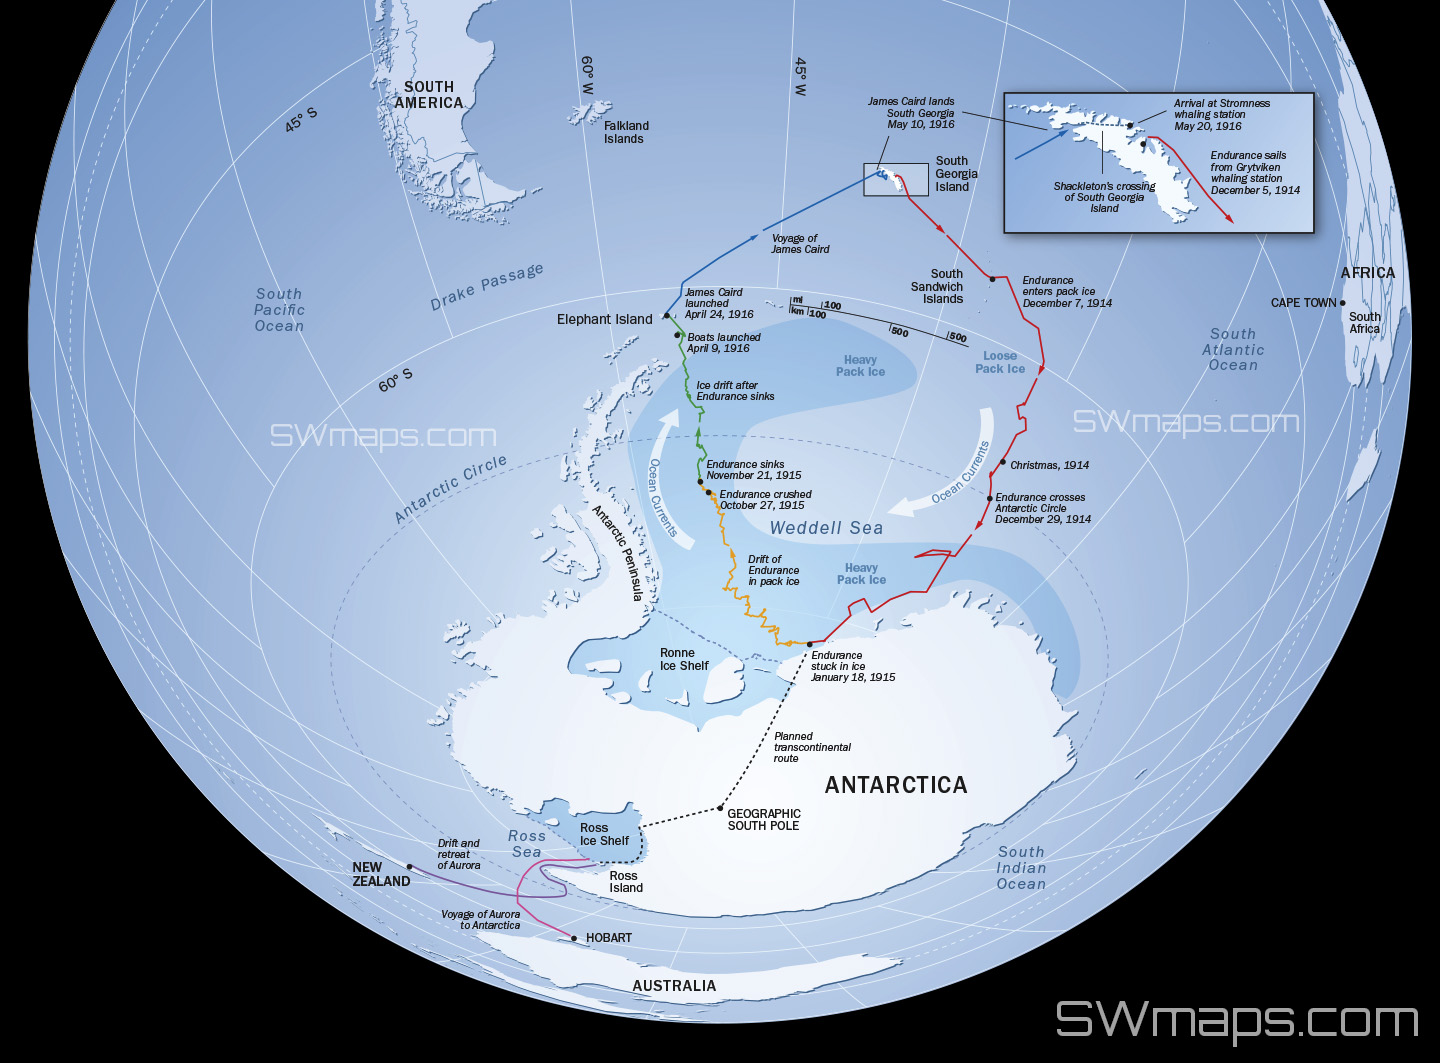 Route of Ernest Shackleton and the Endurance